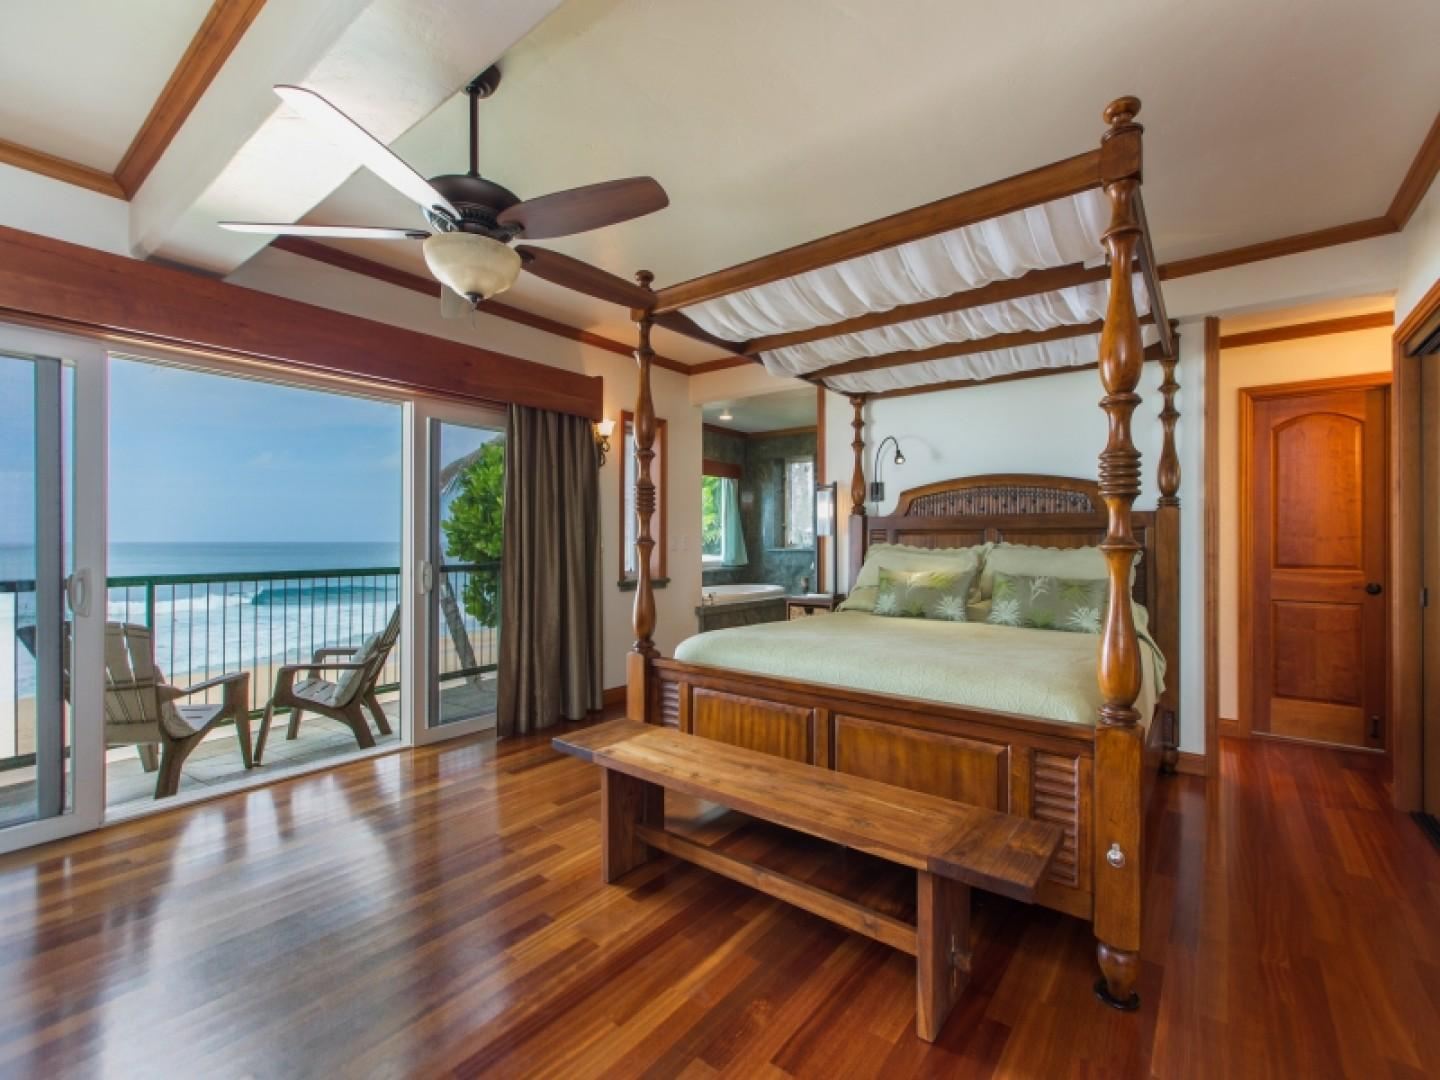 Master suite with king-size canopy bed and spectacular ocean views.